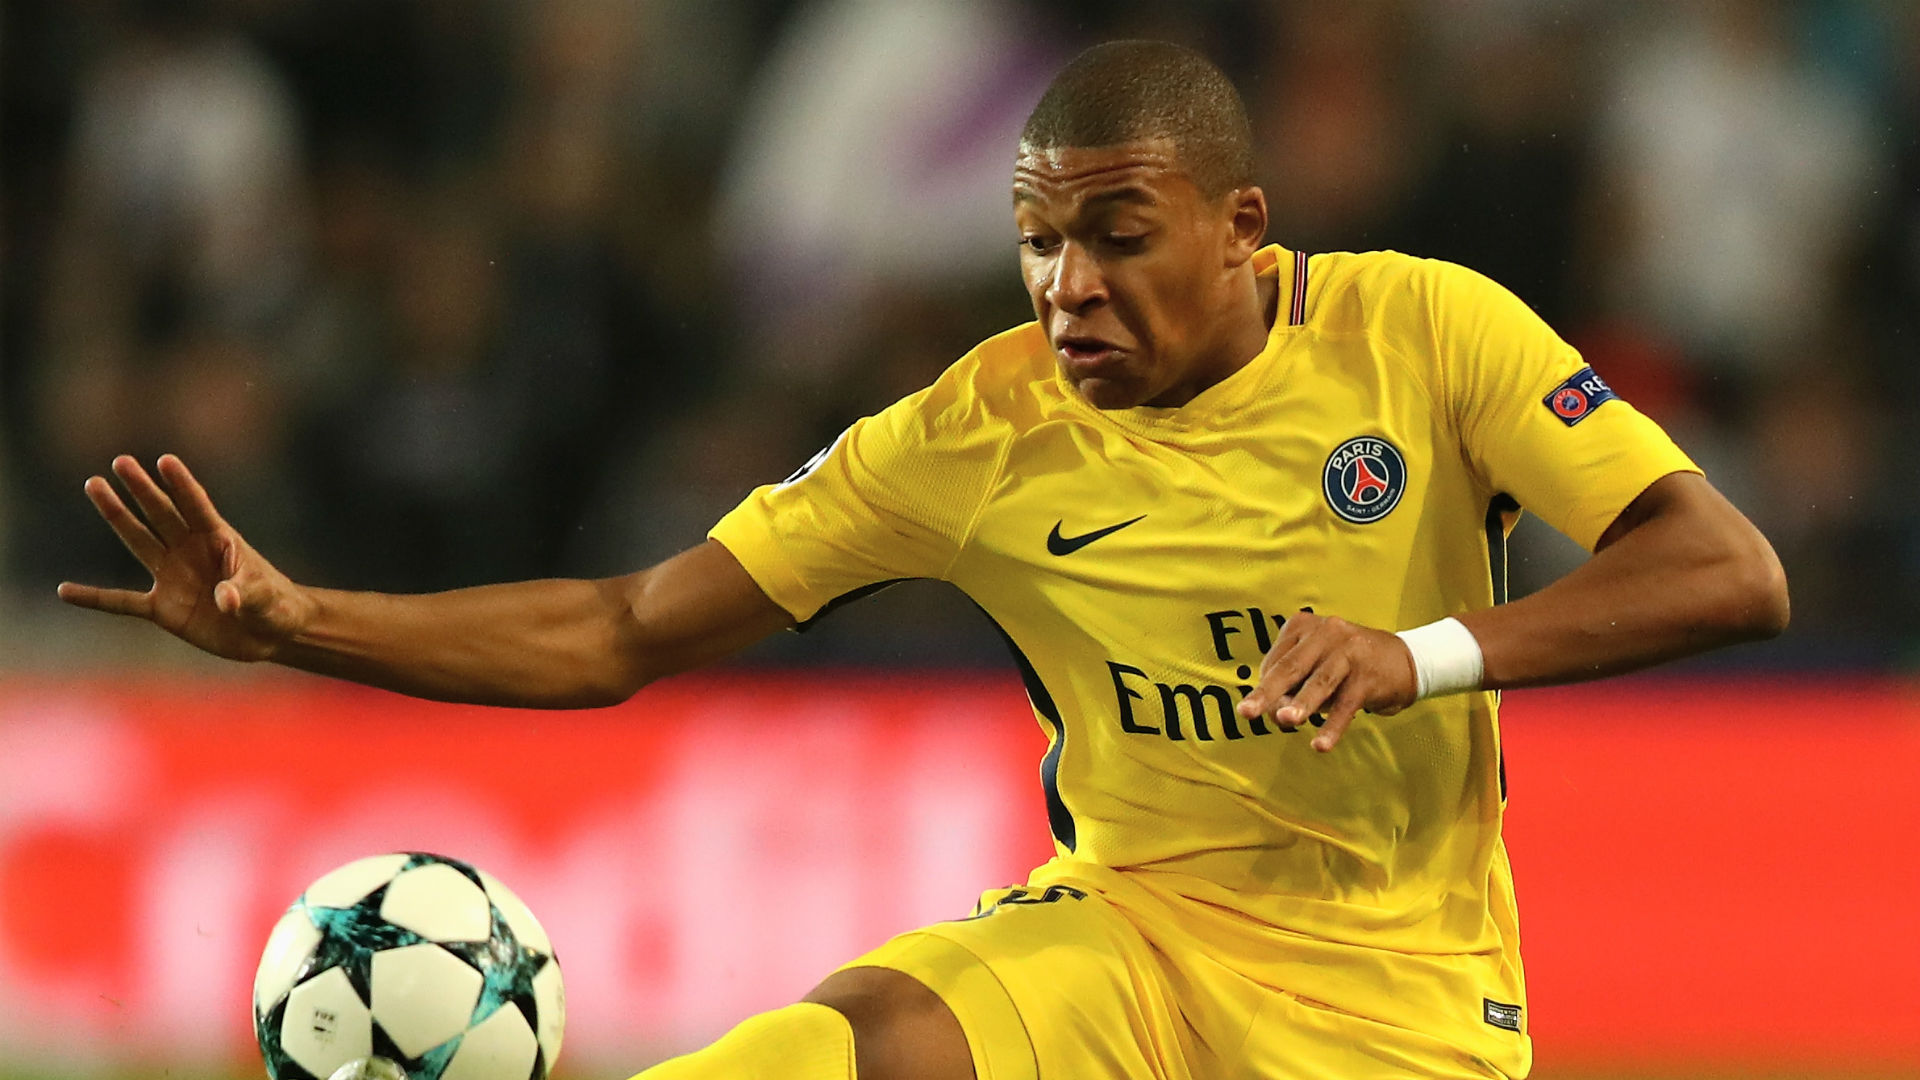 Neymar and Mbappe shine again but PSG must improve despite Anderlecht rout